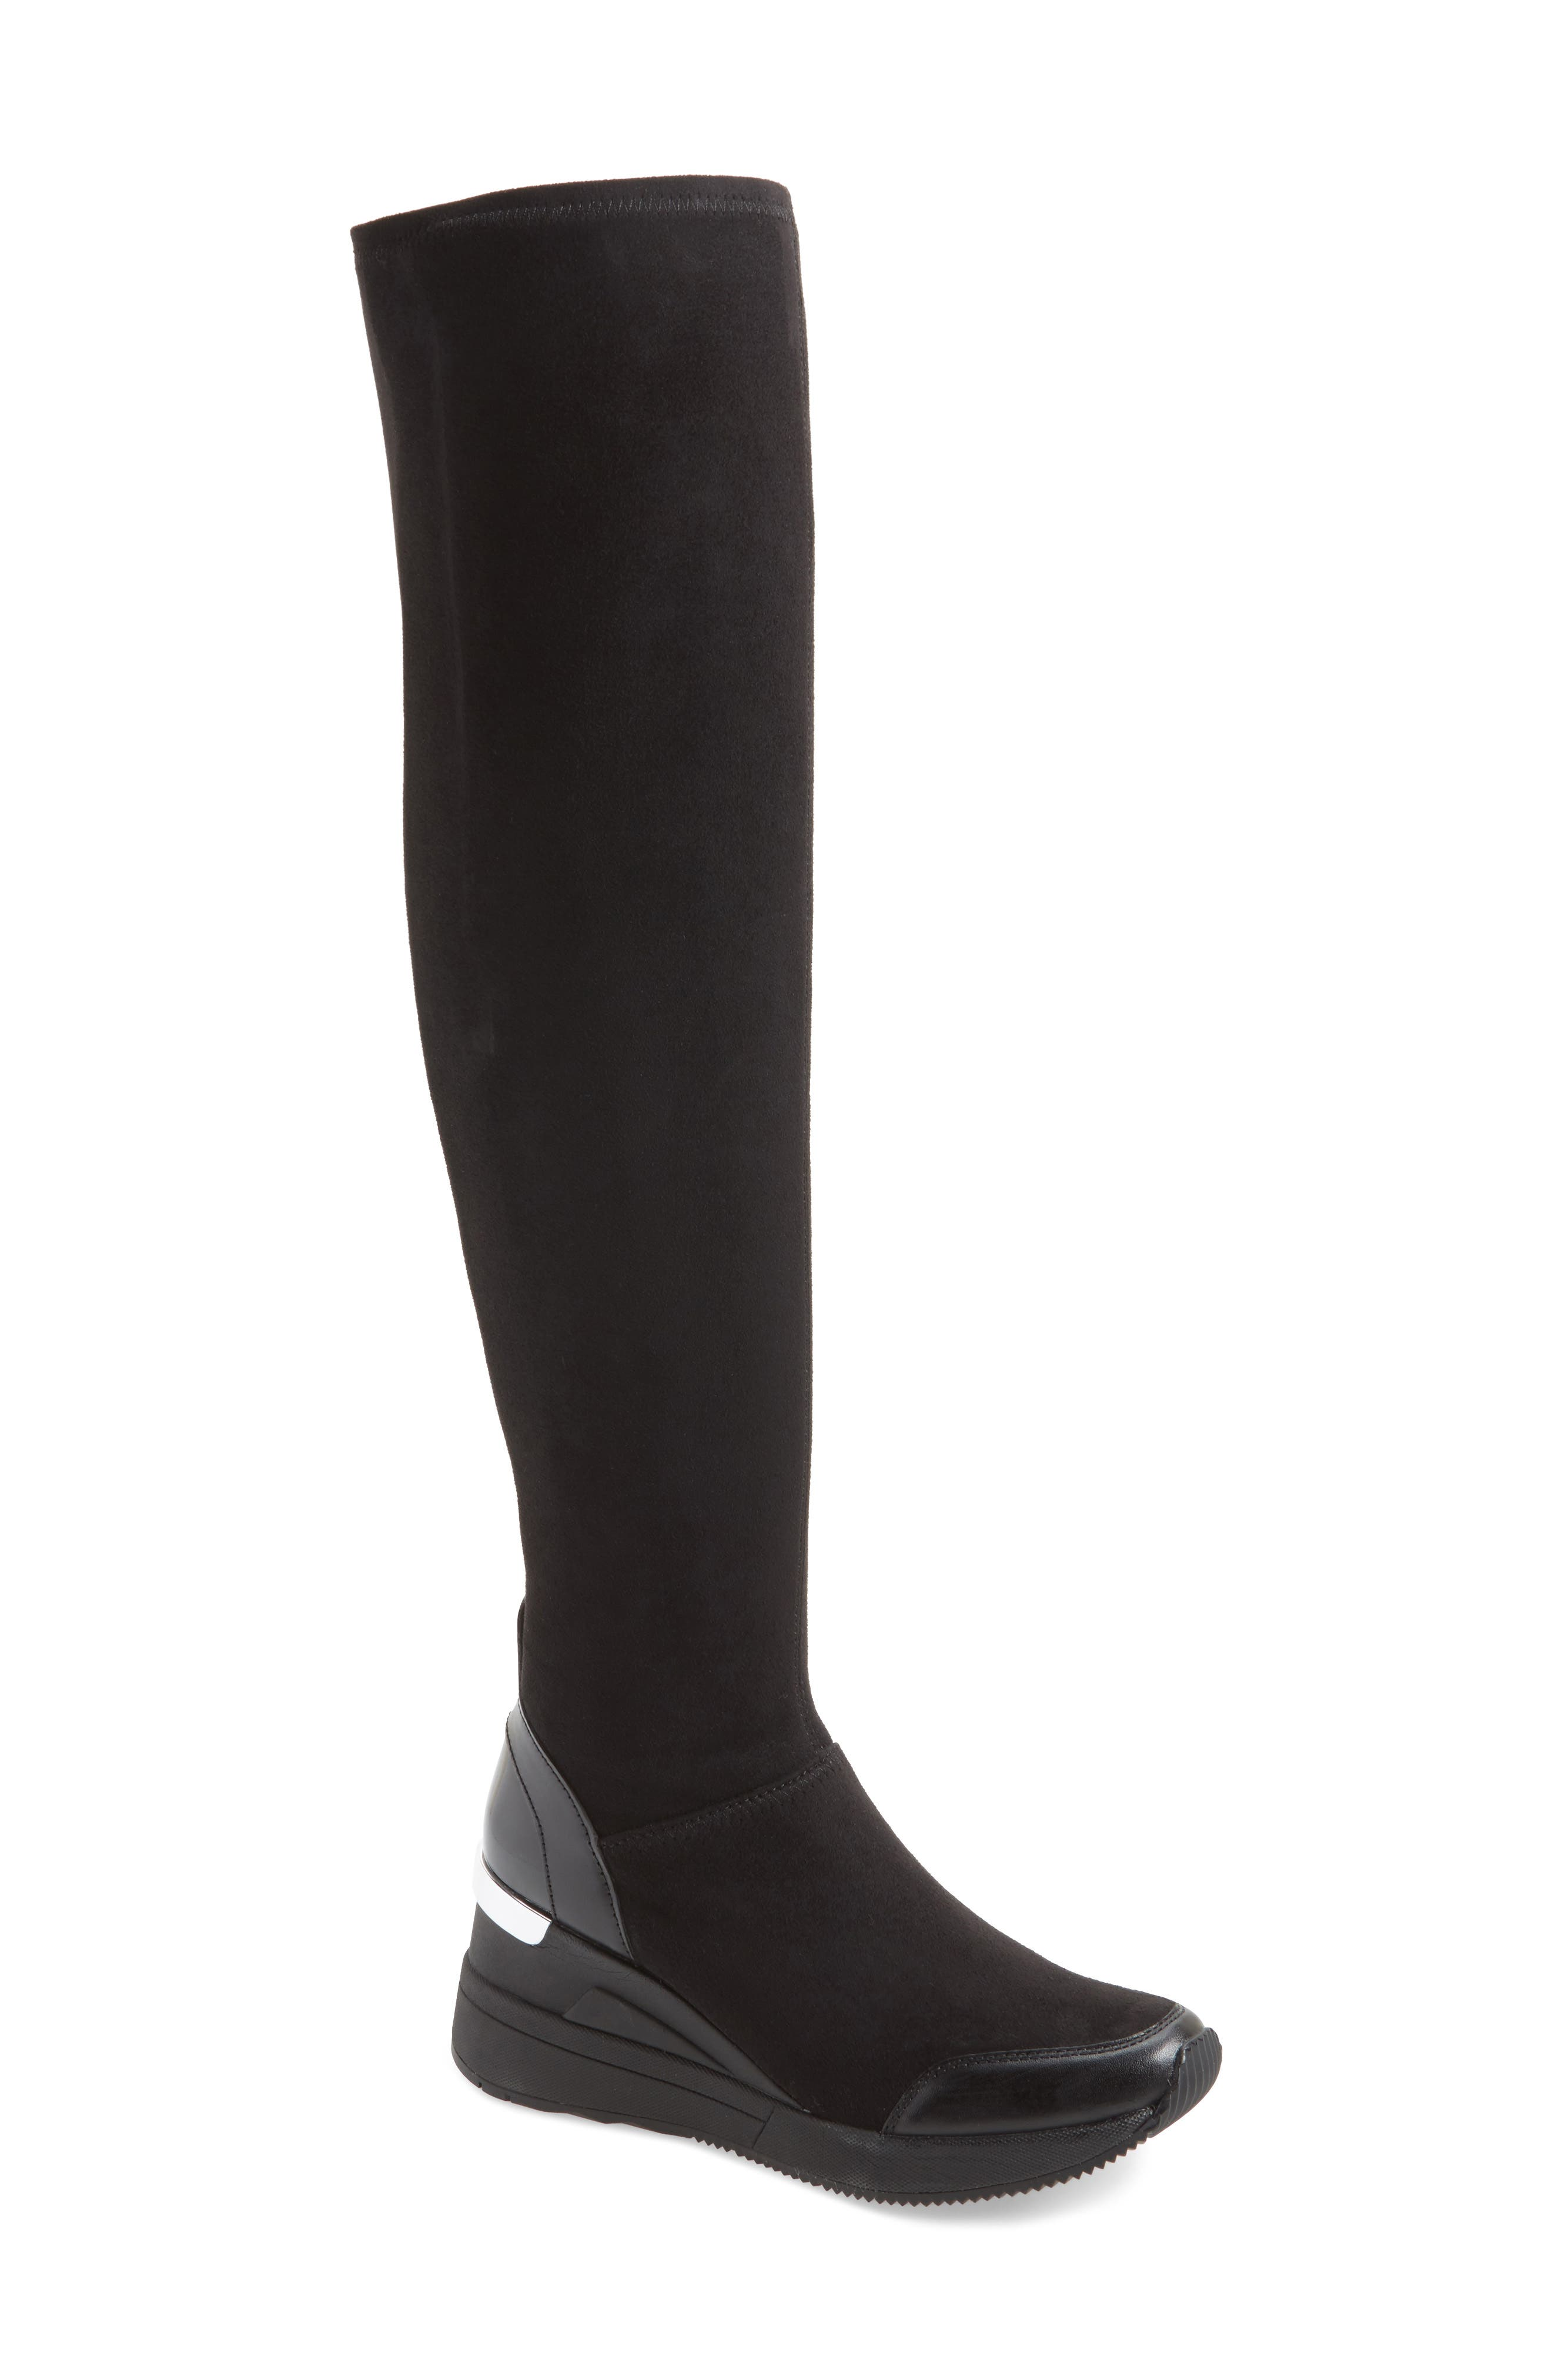 Ace Over the Knee Boot,                             Main thumbnail 1, color,                             002